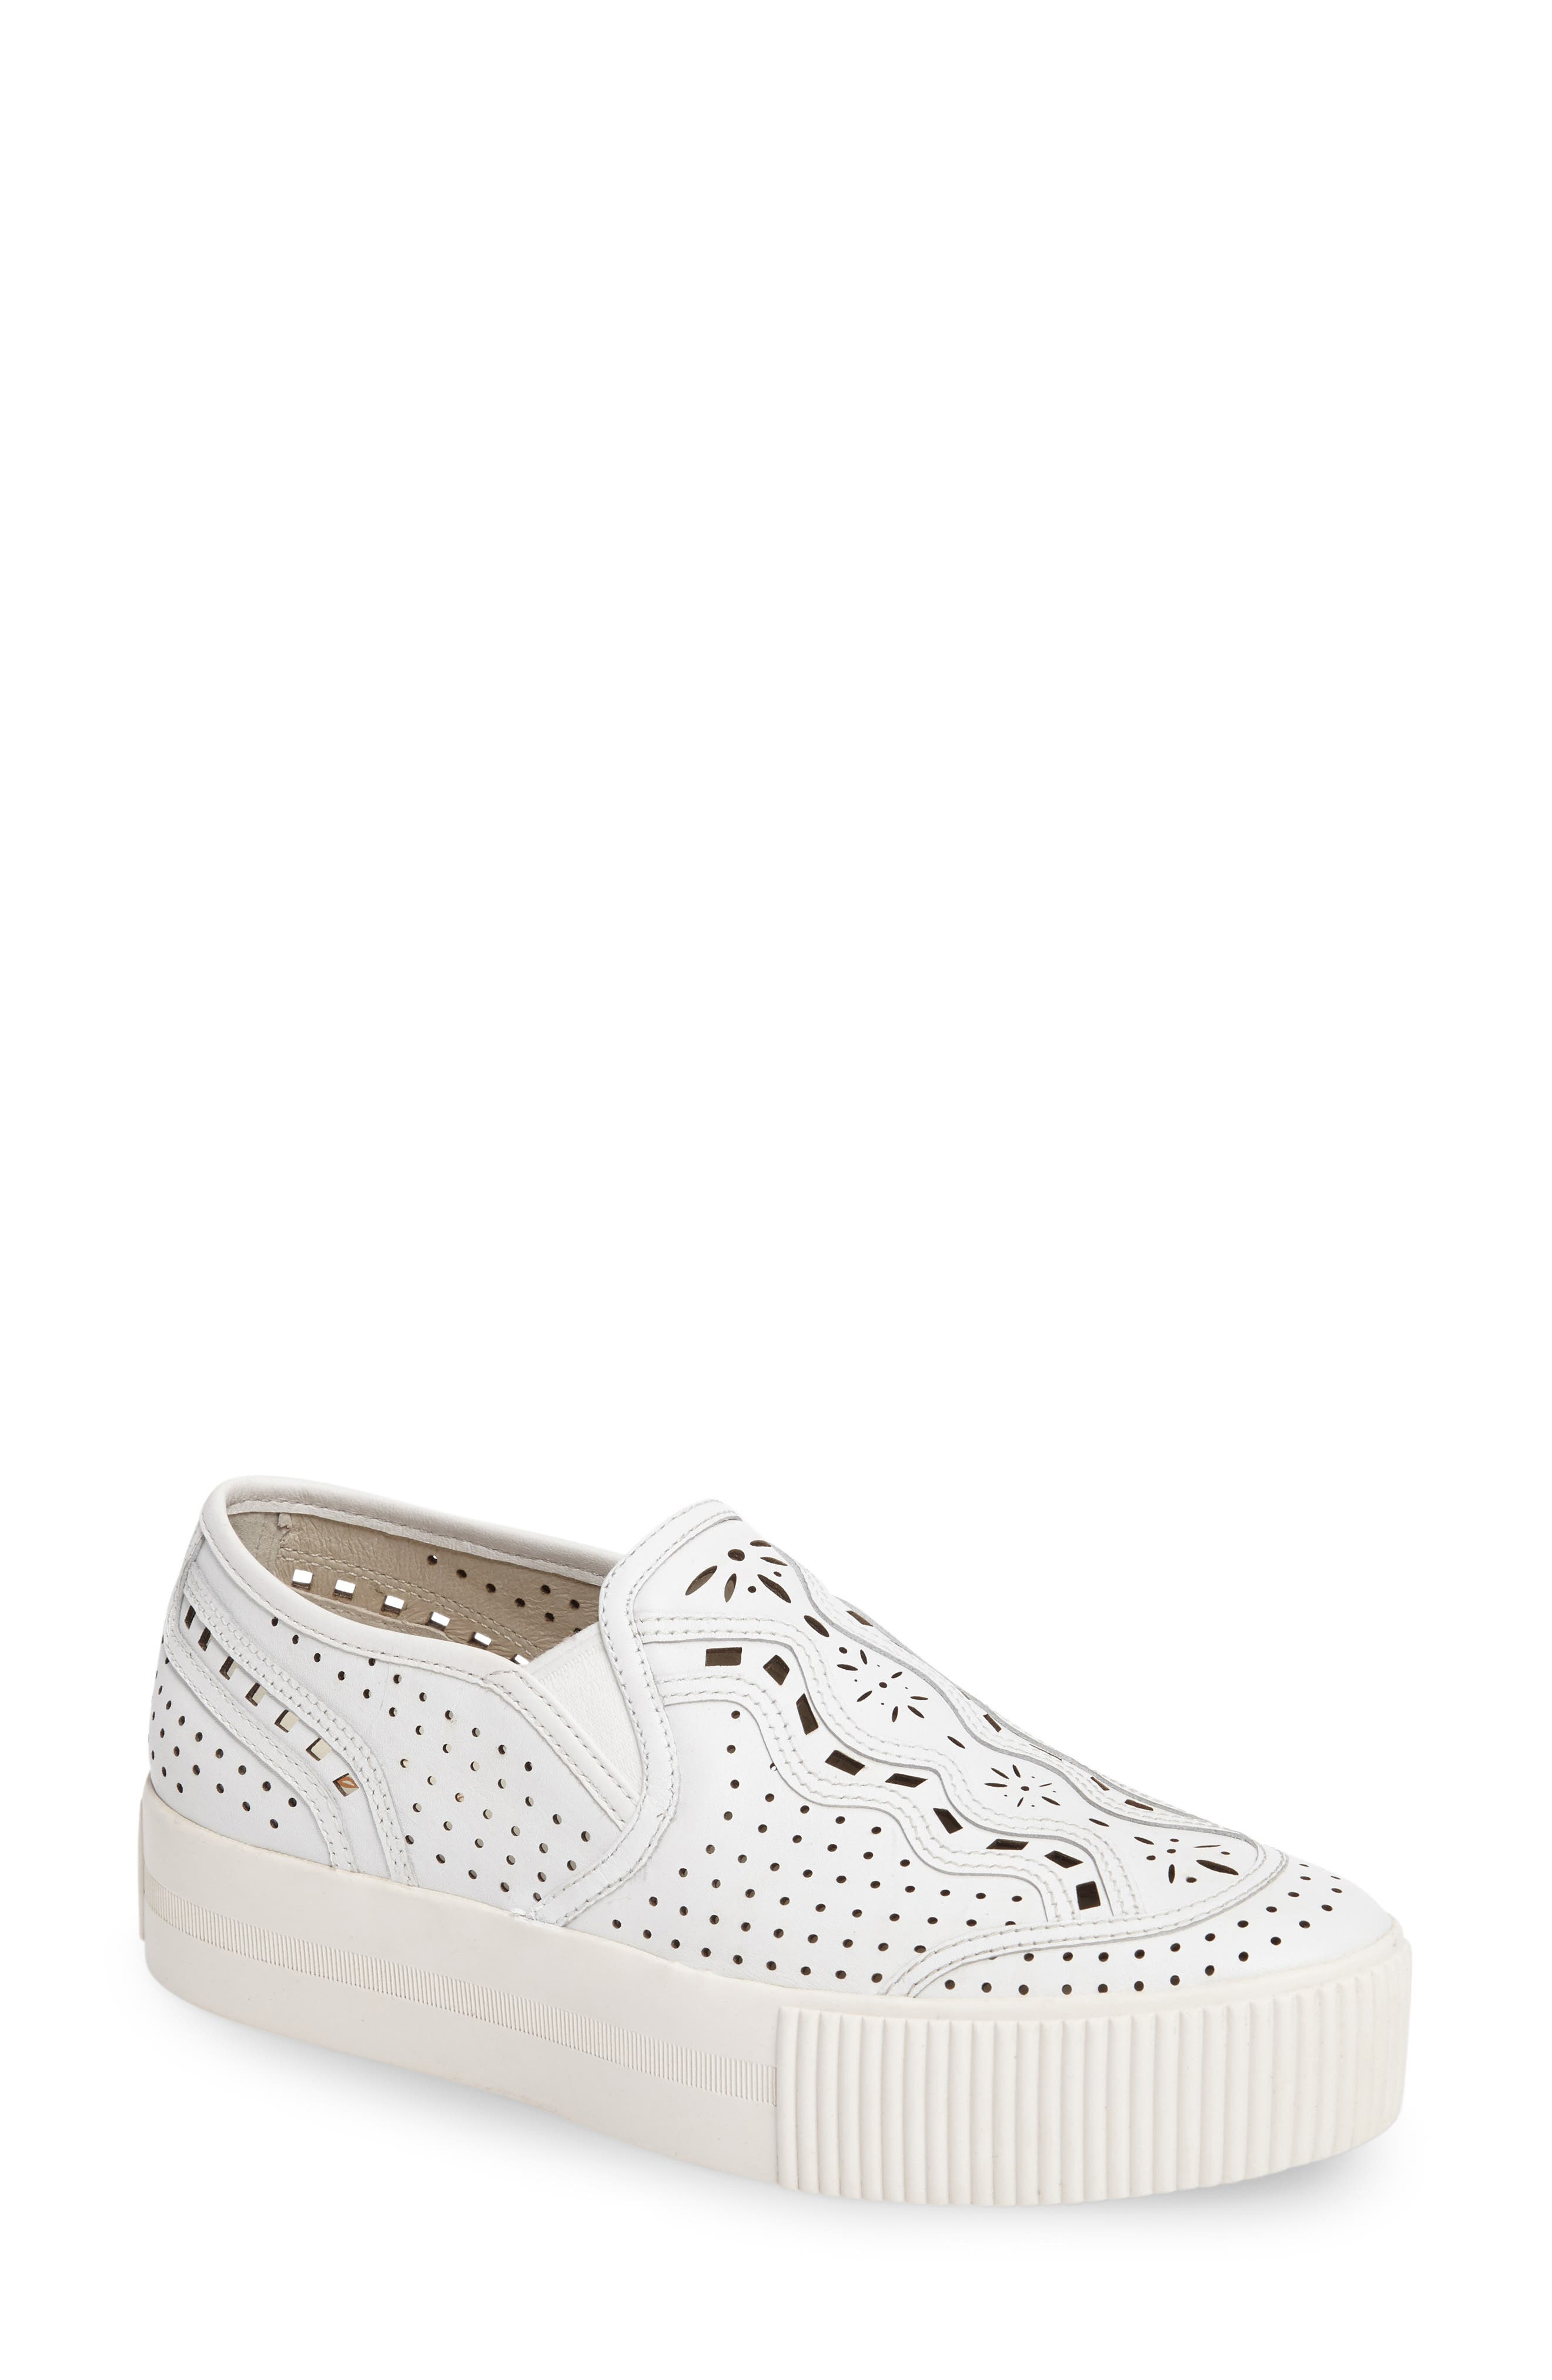 Alternate Image 1 Selected - Ash Kingston Perforated Platform Sneaker (Women)